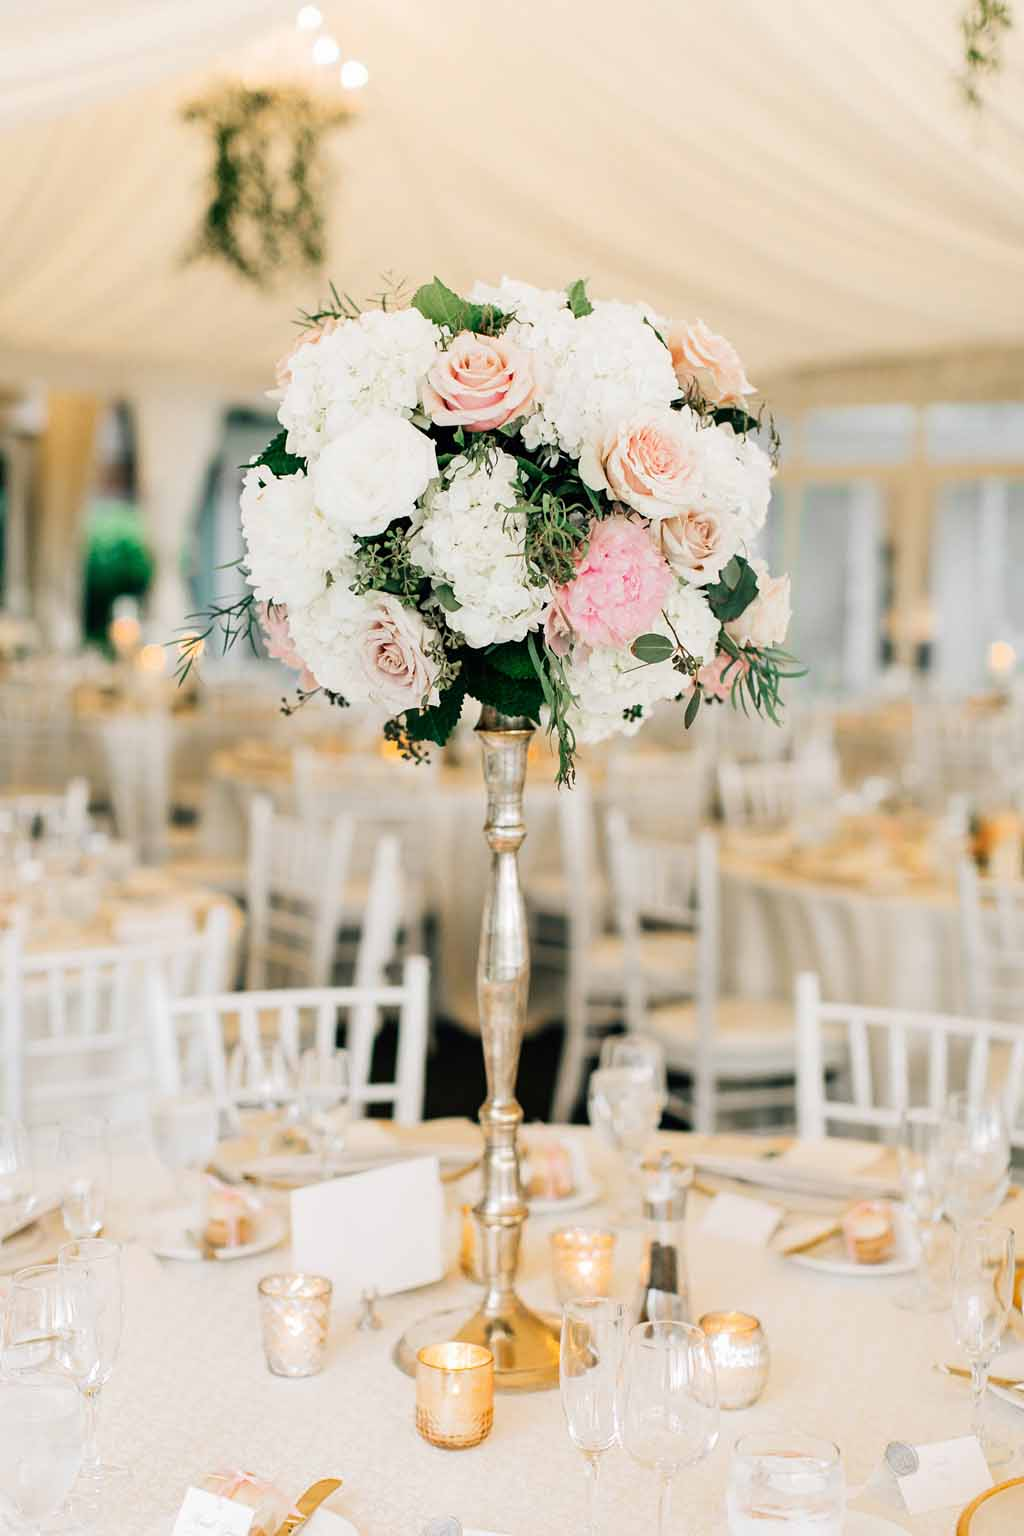 Elevated centerpiece on top of a silver vintage stand featuring peach roses, white hydrangea, white peonies, and greenery